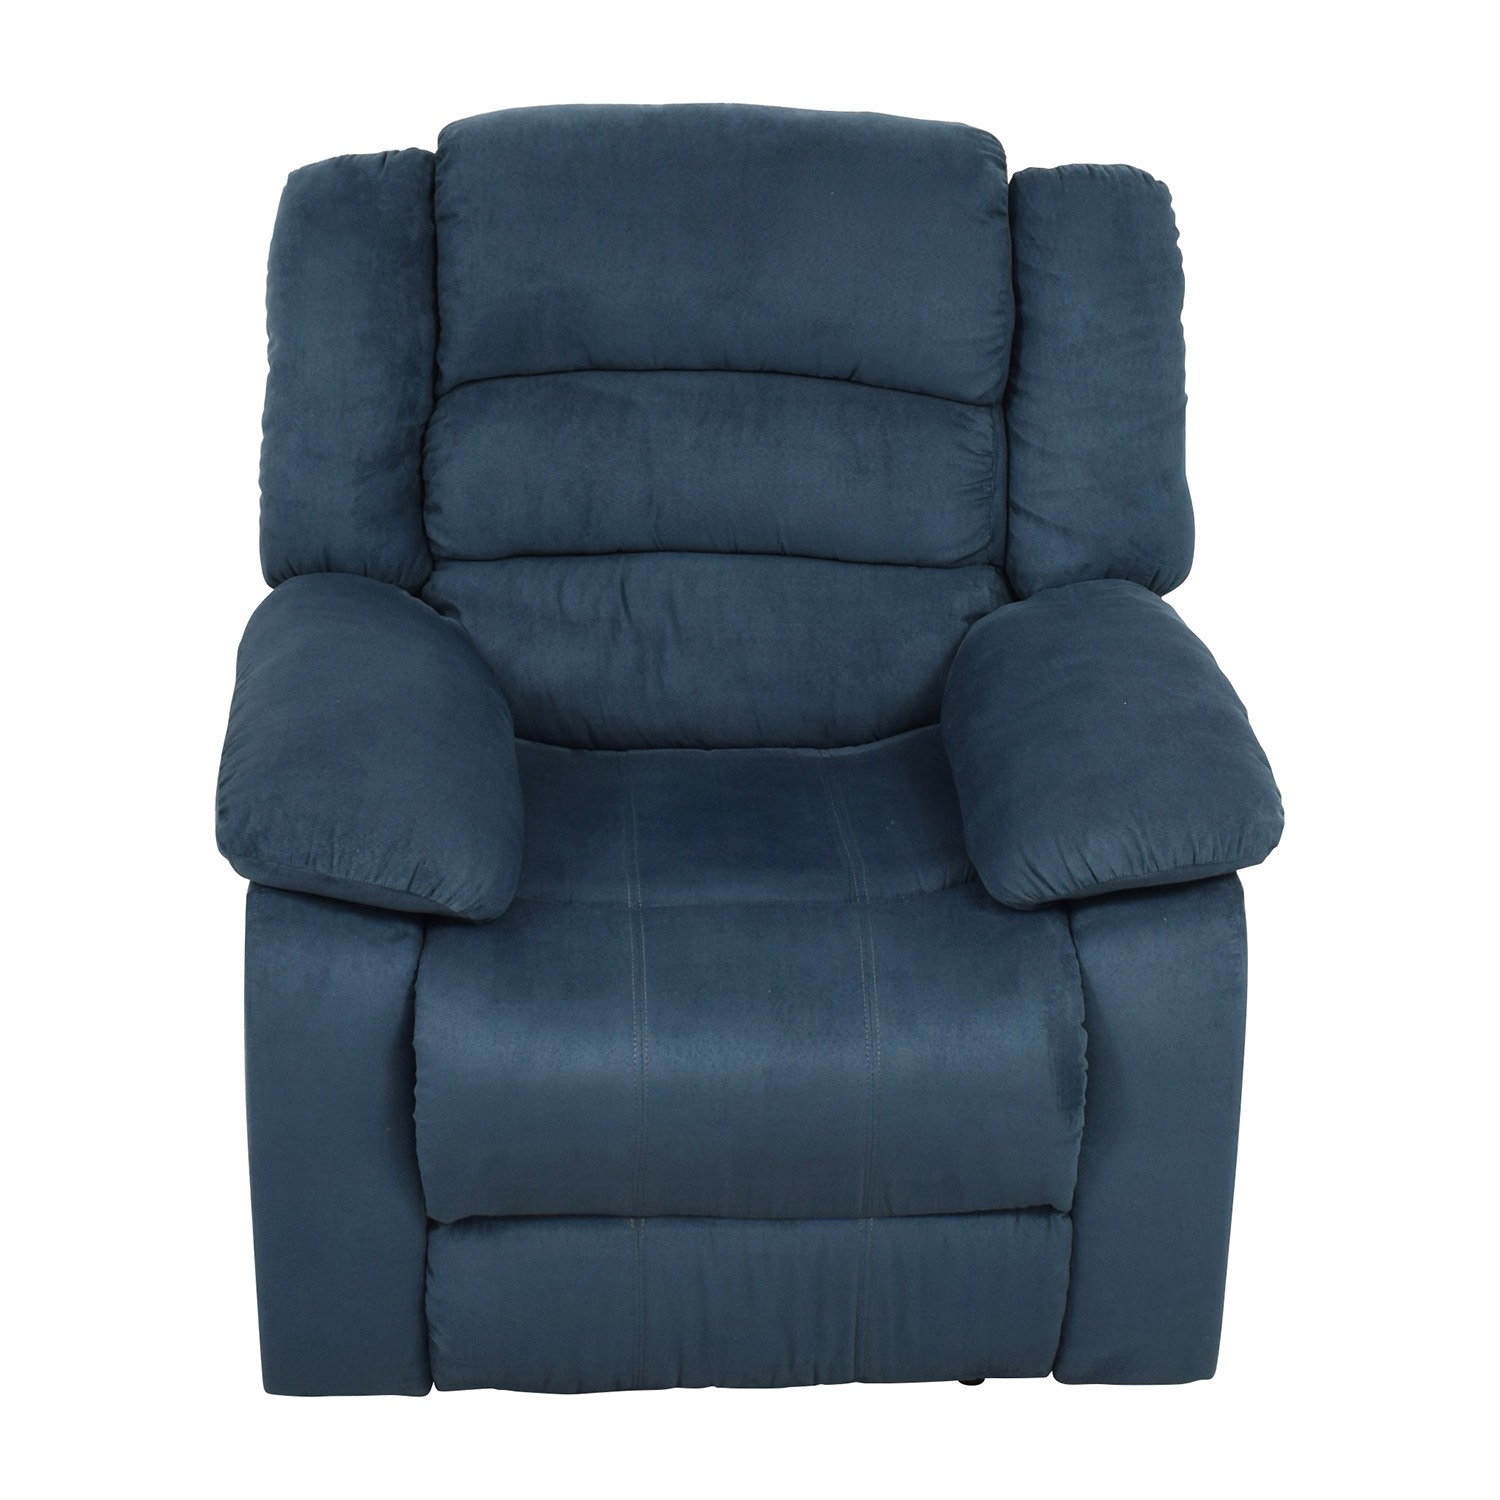 Nathaniel Home Nathaniel Home Express Addison Contemporary Recliner for sale